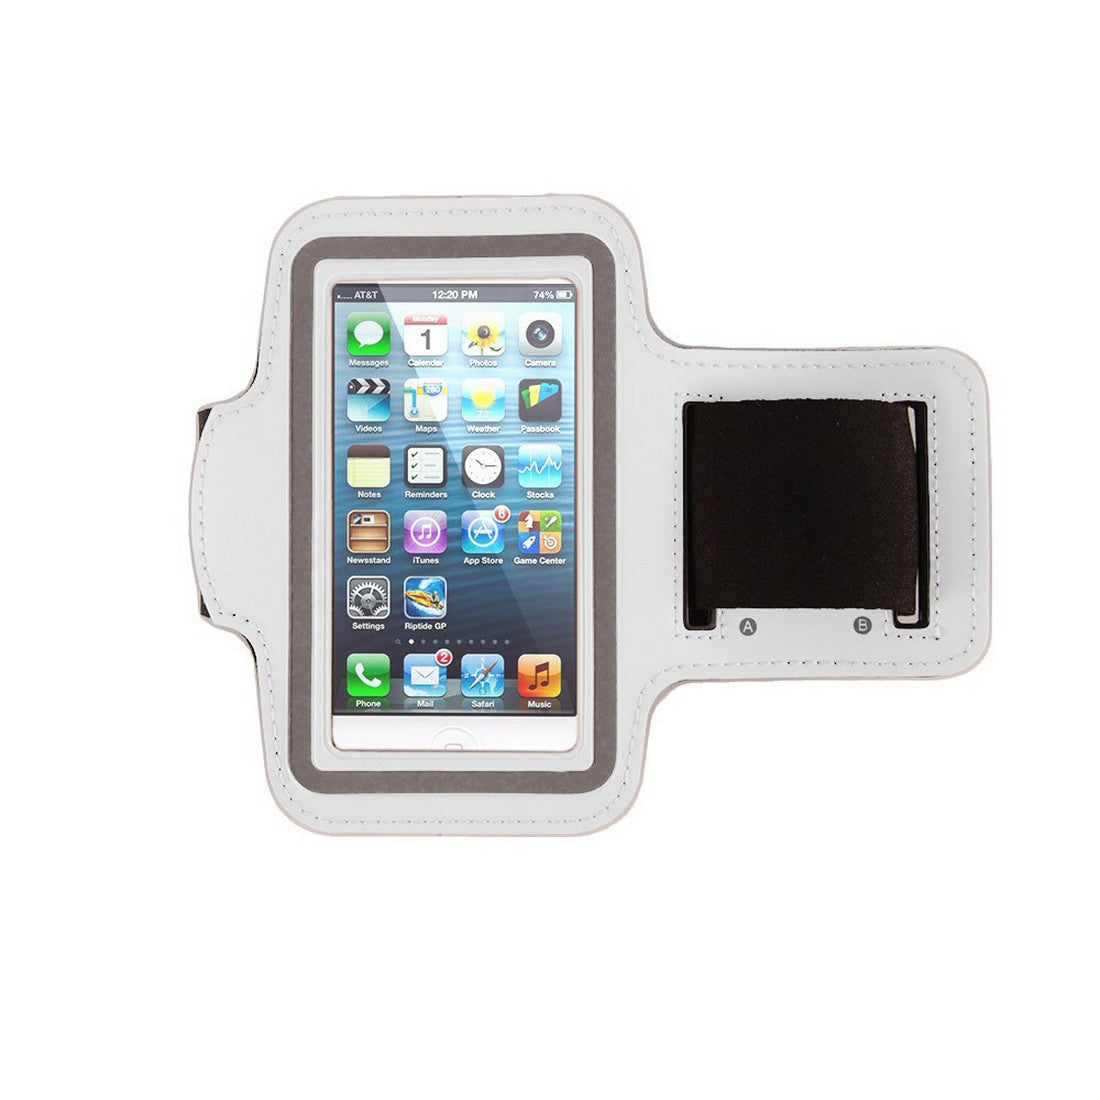 Neoprene Armband Size 01 For Iphone 4G/4S/5/5C/5S & I touch 5th Gen & Samsung i437/s4M & LG W7 & kyocera C6721/C5120 & Nokia 521 White